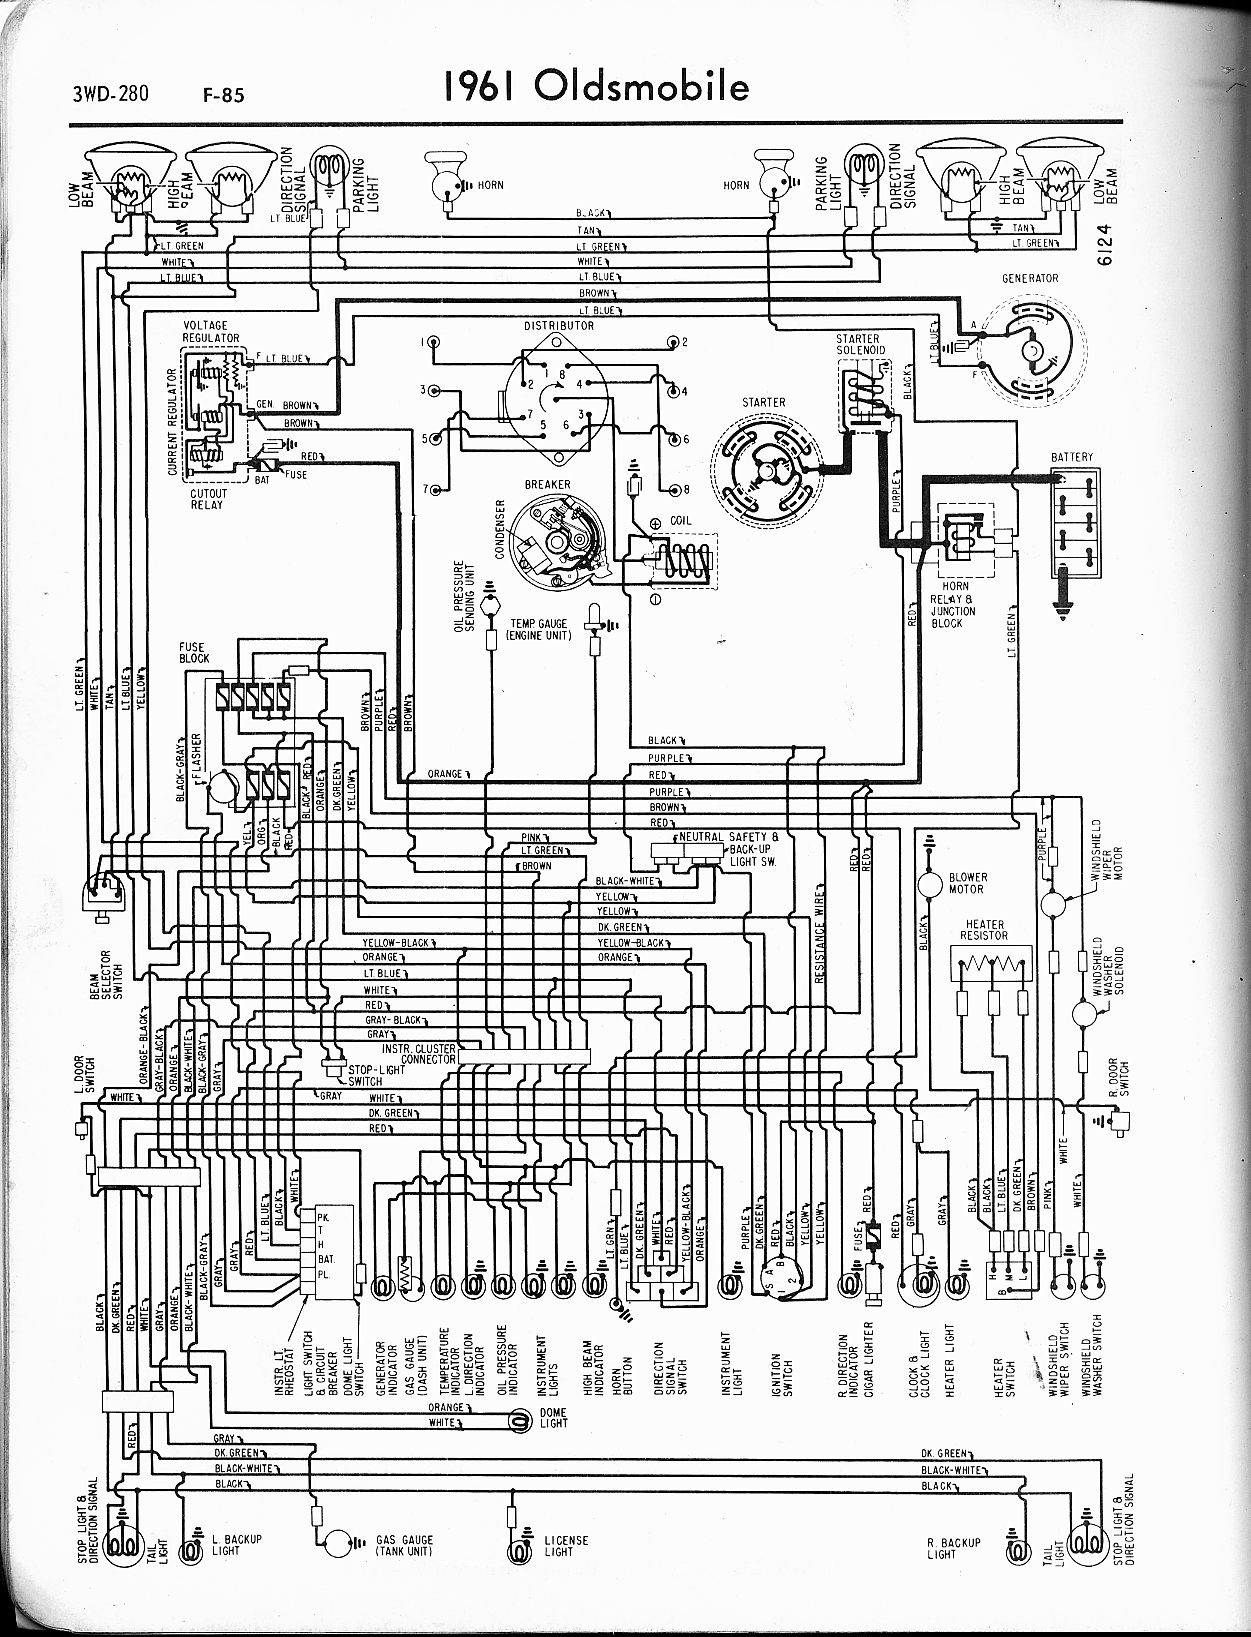 Fantastic Chevelle Horn Relay Wiring Free Download Wiring Diagrams Pictures Wiring Digital Resources Unprprontobusorg